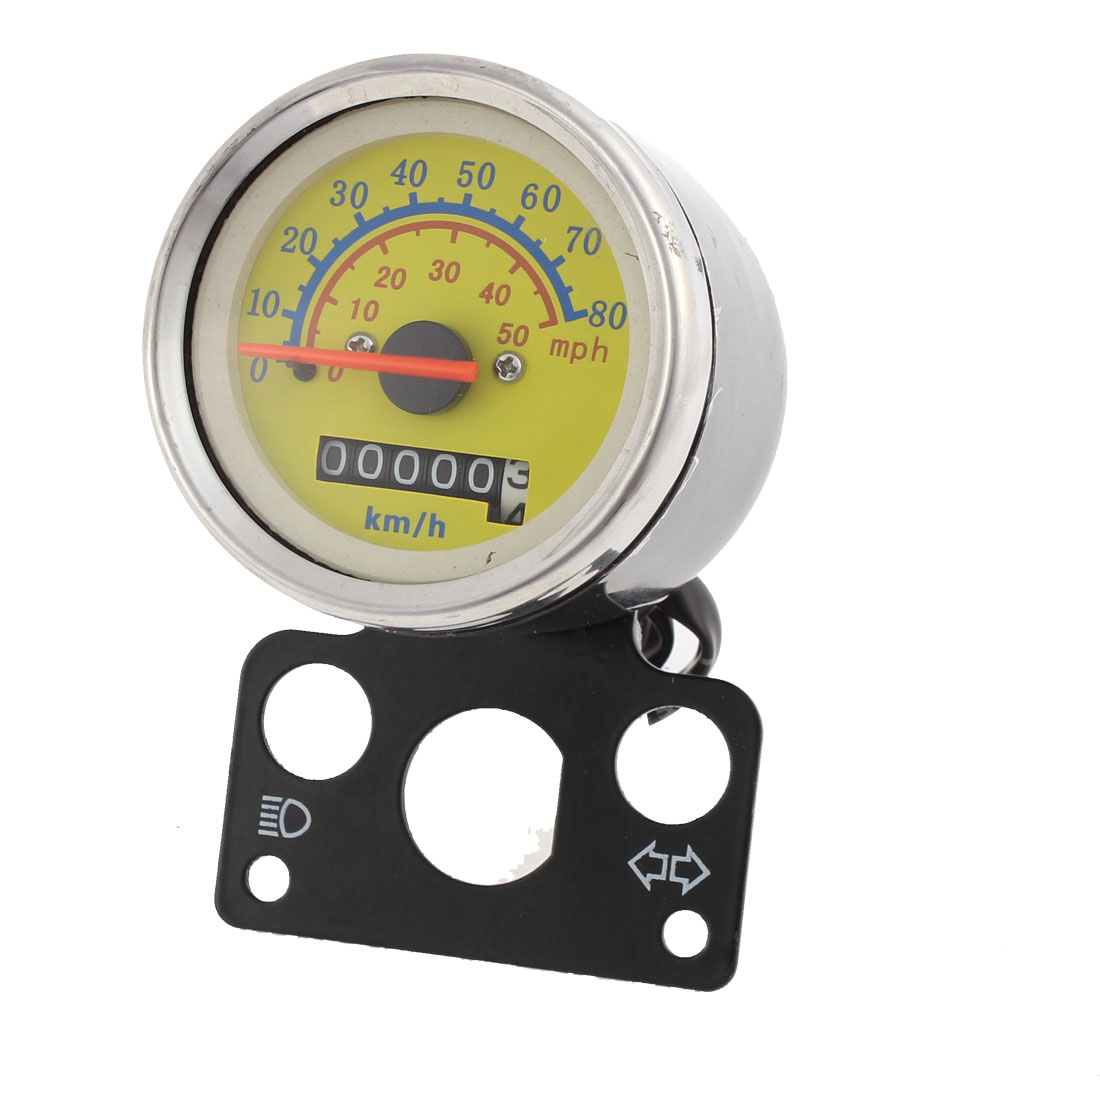 DC 12V Motorcycle Scooter Analog Gauge Odometer Speedometer 0-80km/h for Suzuki